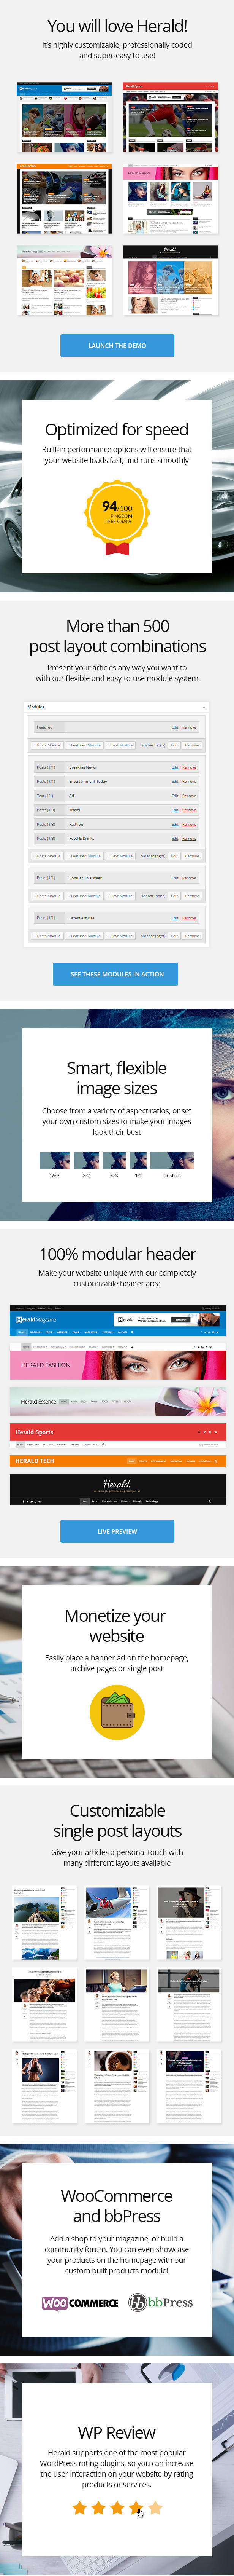 Herald - News Portal & Magazine WordPress Theme